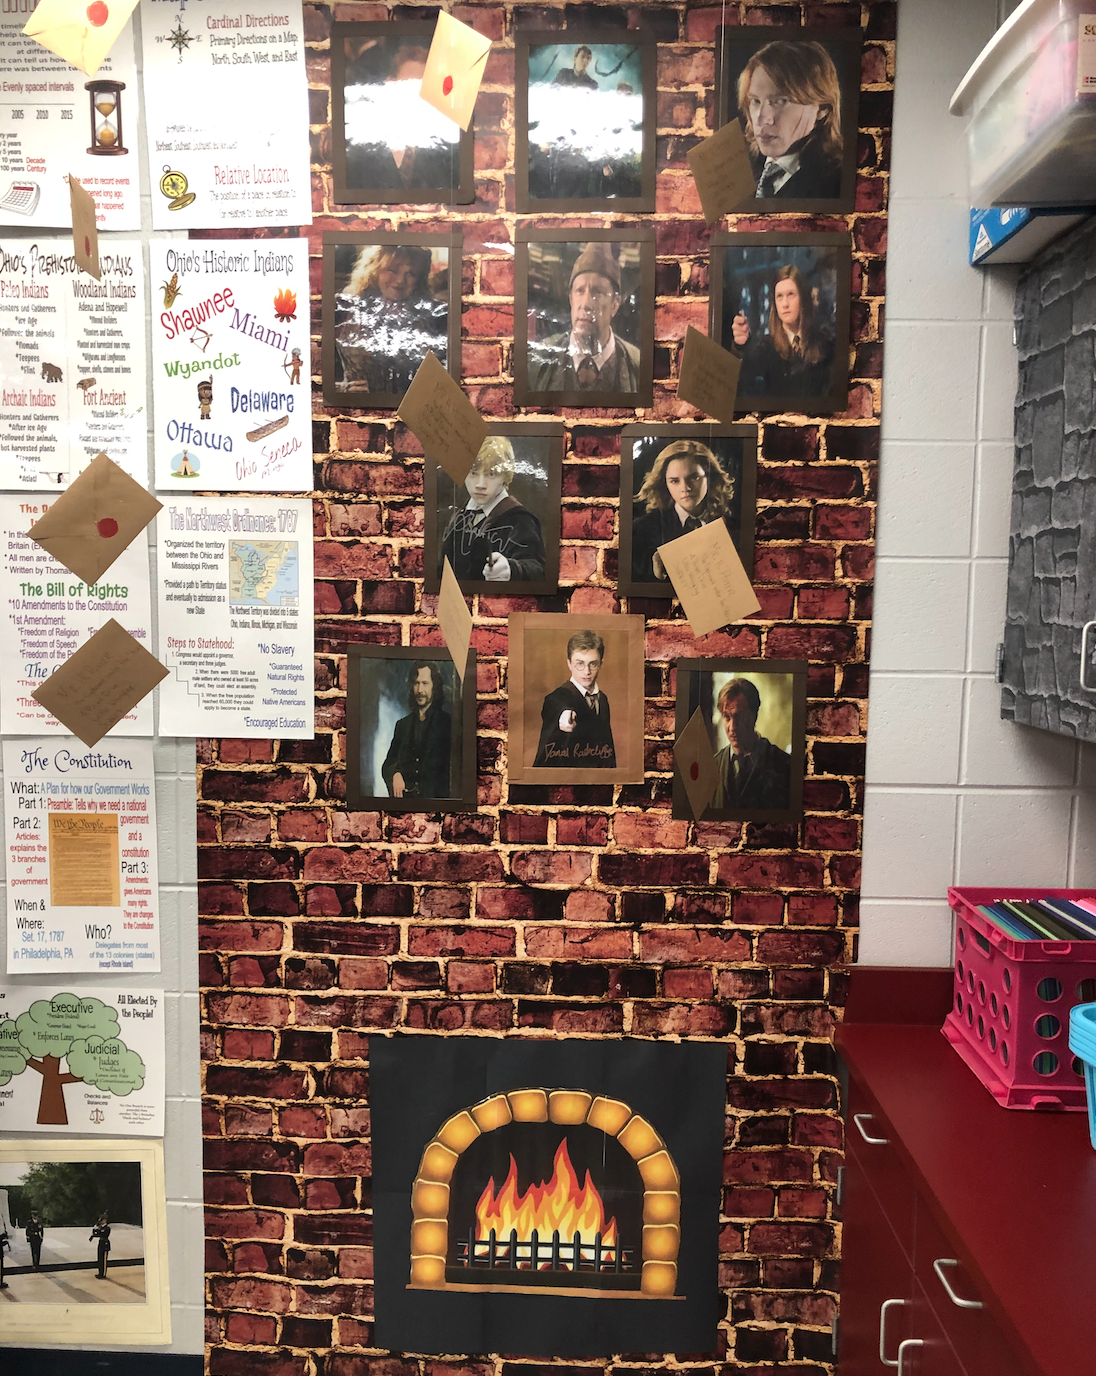 At the back corner of the room is a fireplace with letters making their way out. Above it are some of my favorite characters and their families.